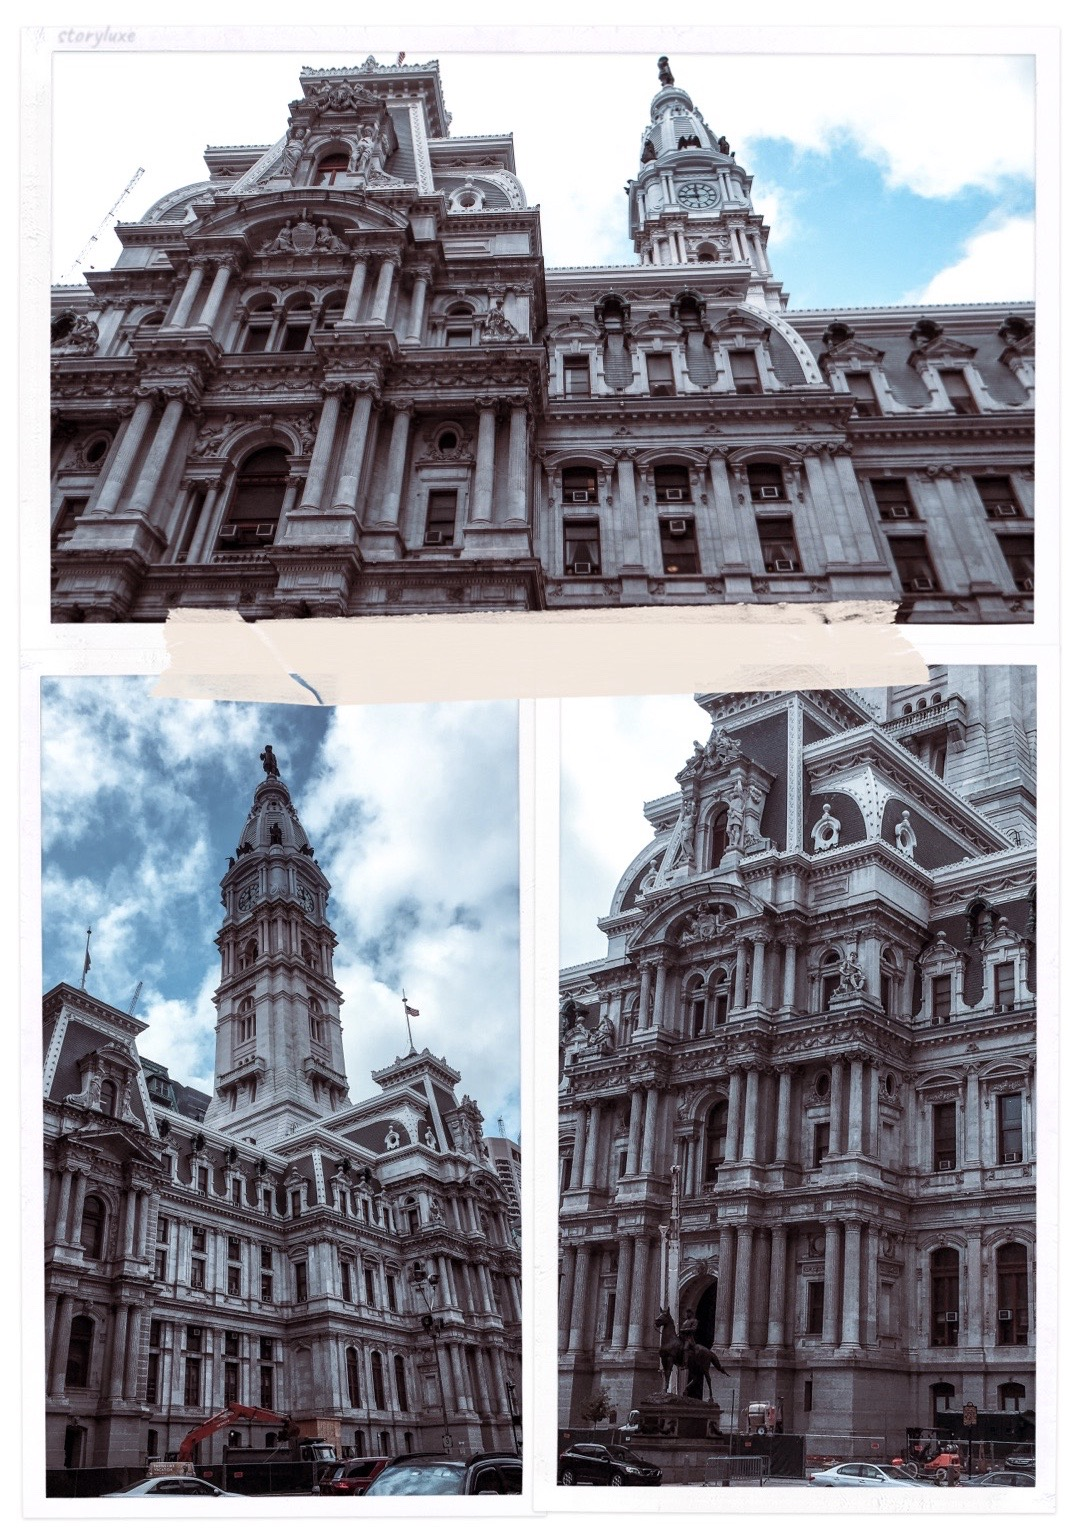 Philly 7